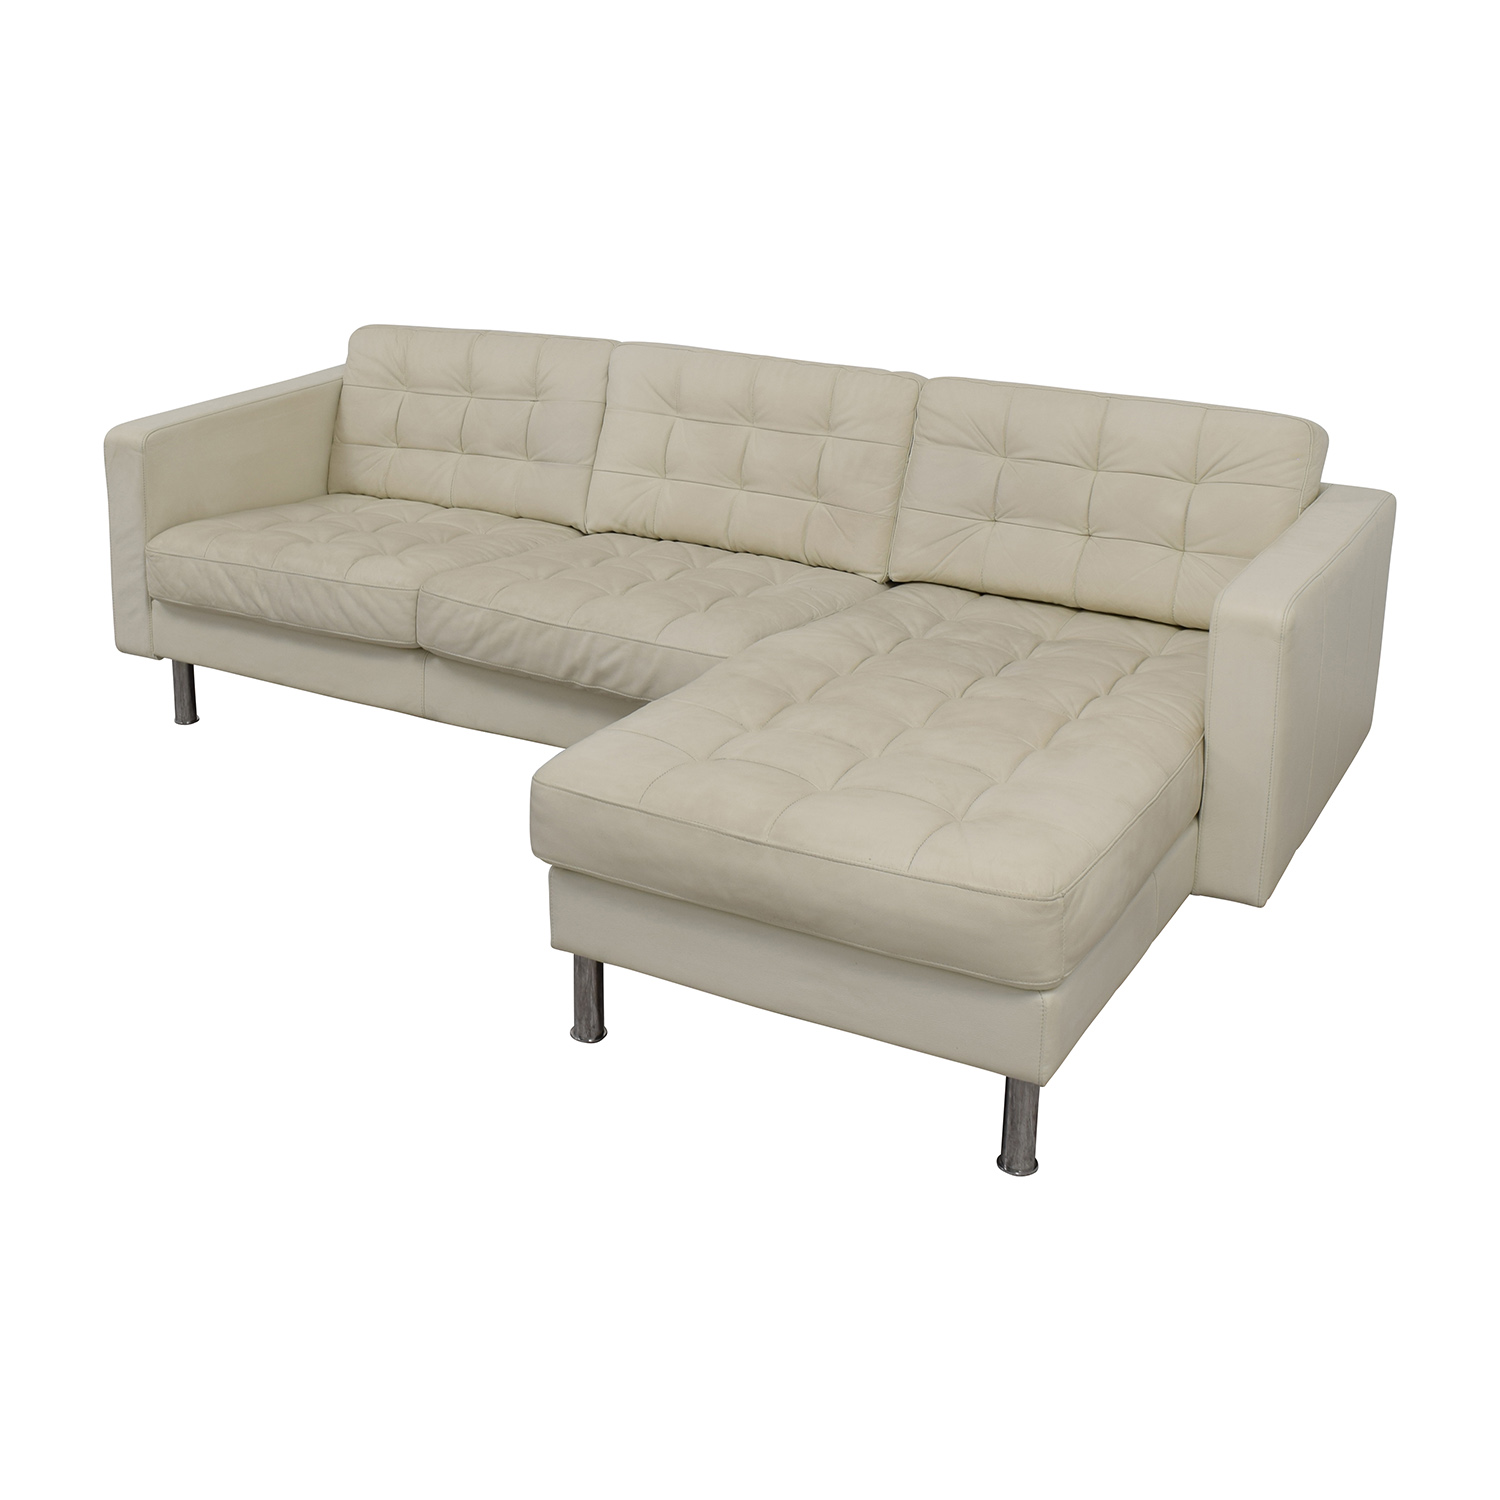 69 Off Ikea Ikea Landskrona Leather Sectional Sofas